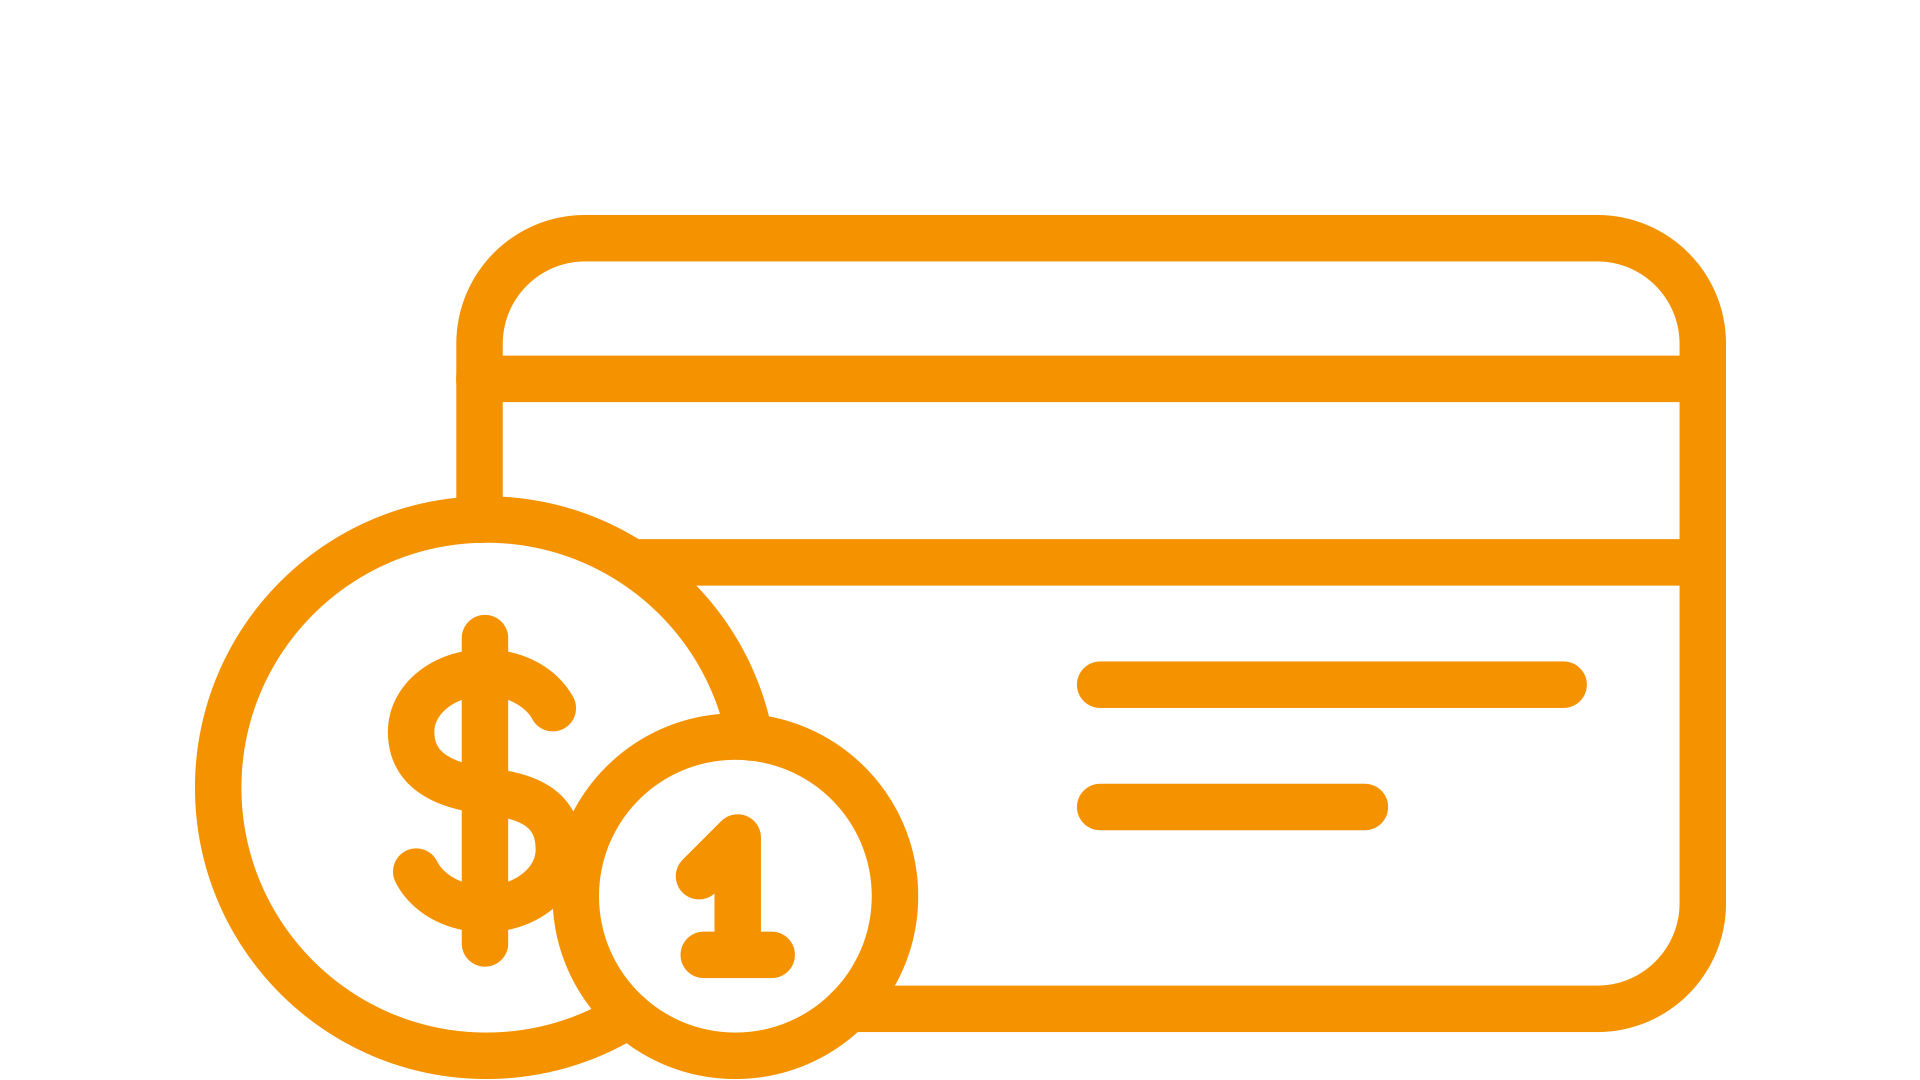 pictogram of a banking symbol